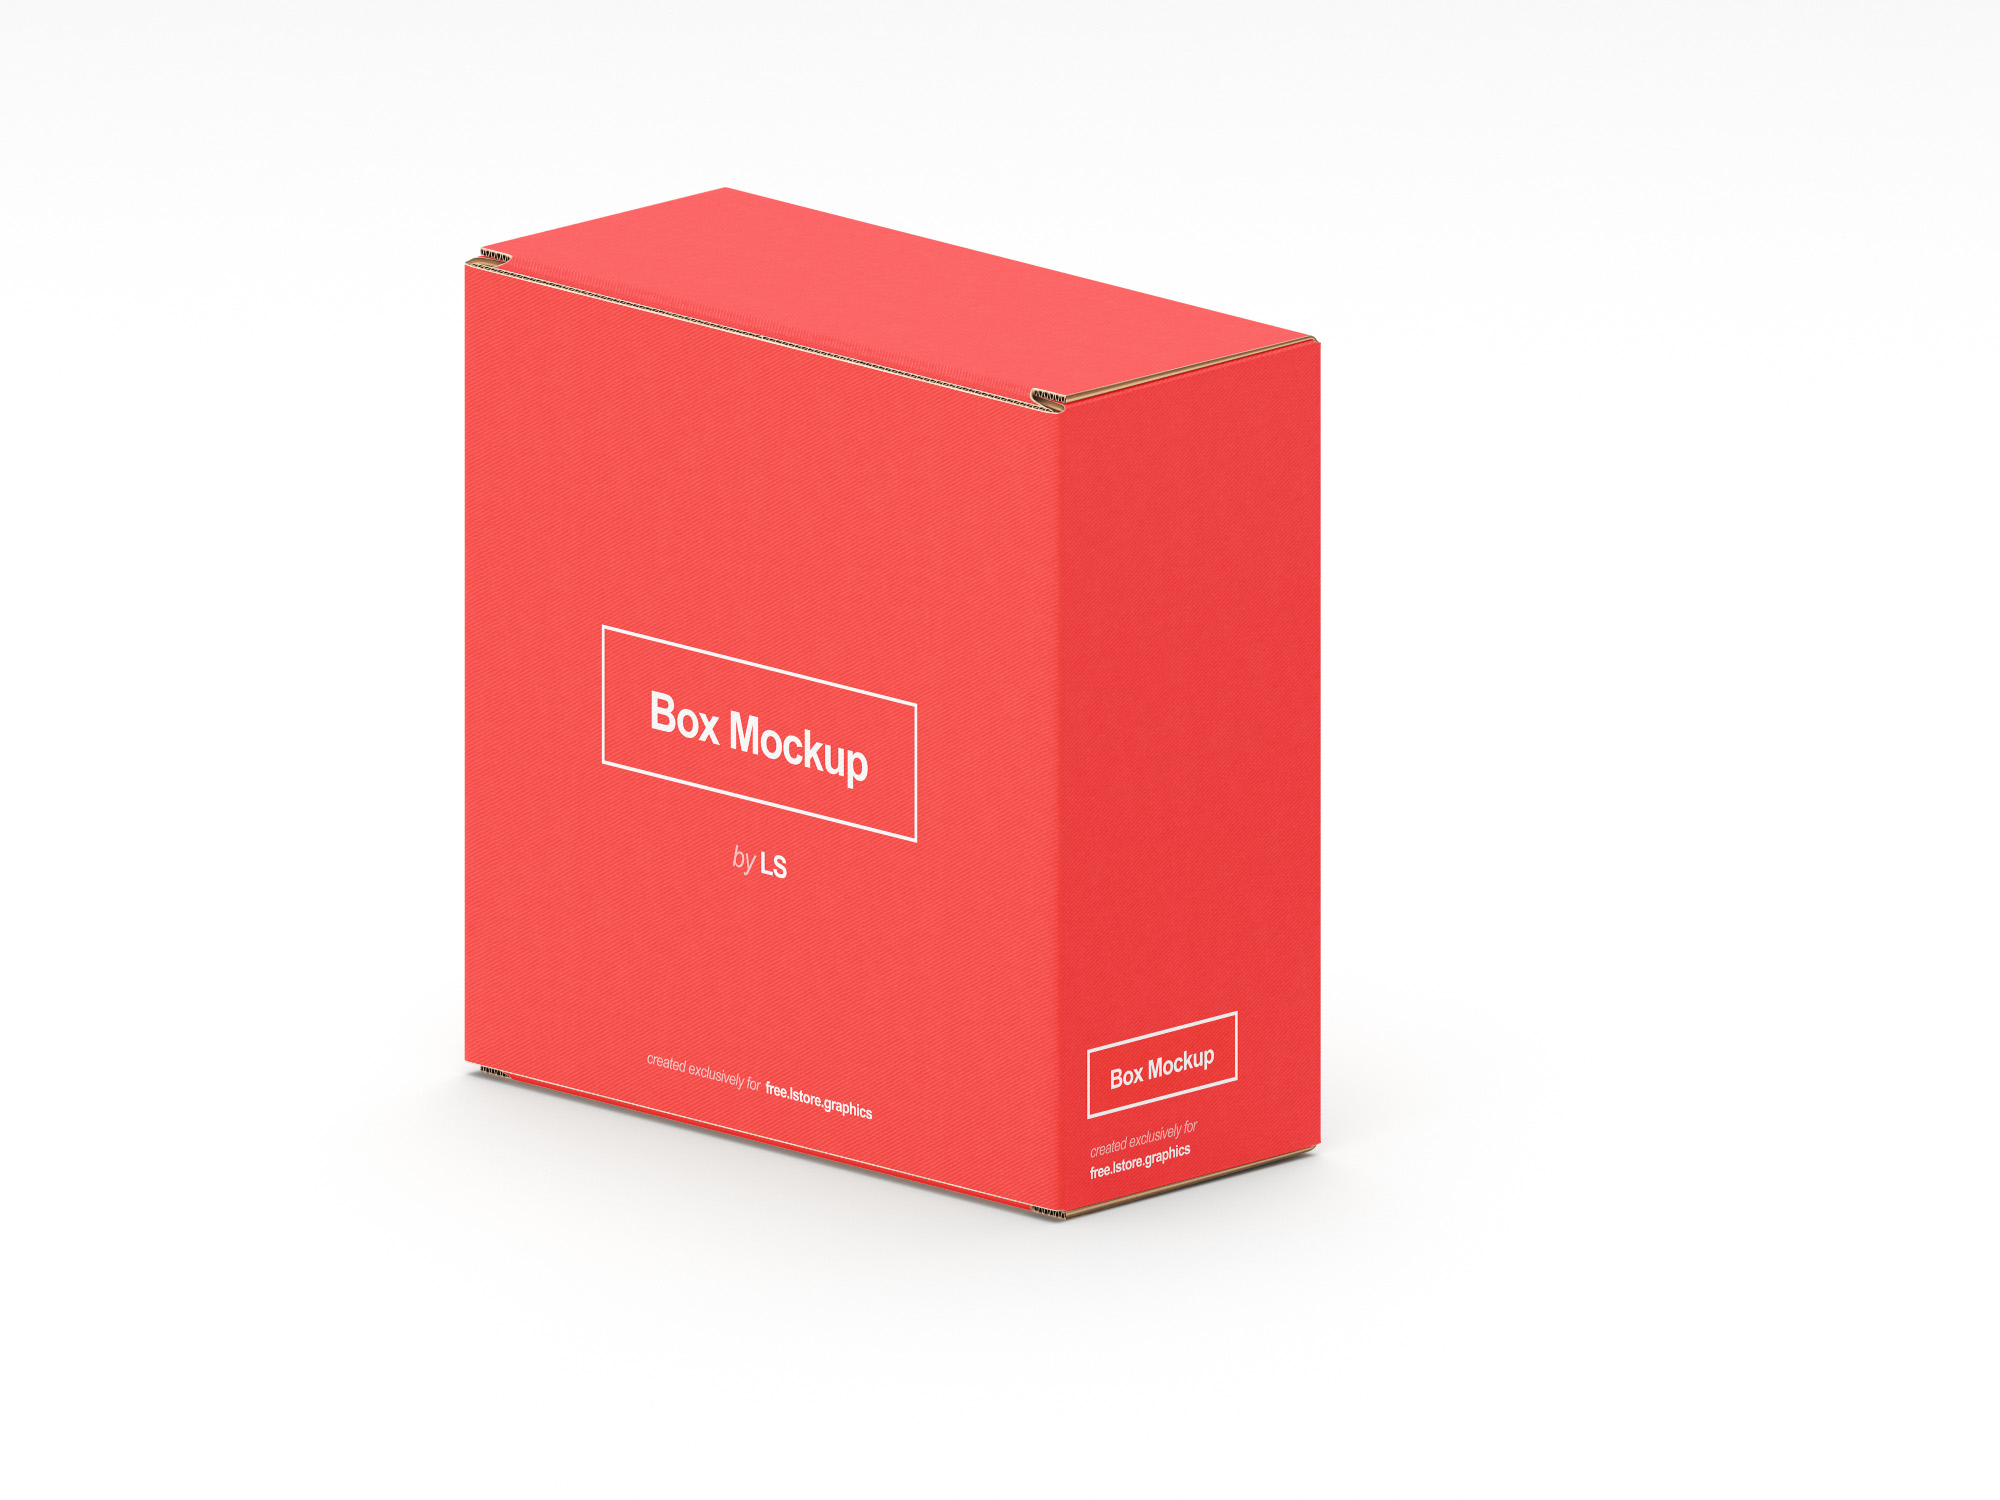 7 box mockups freebies for designers and developers